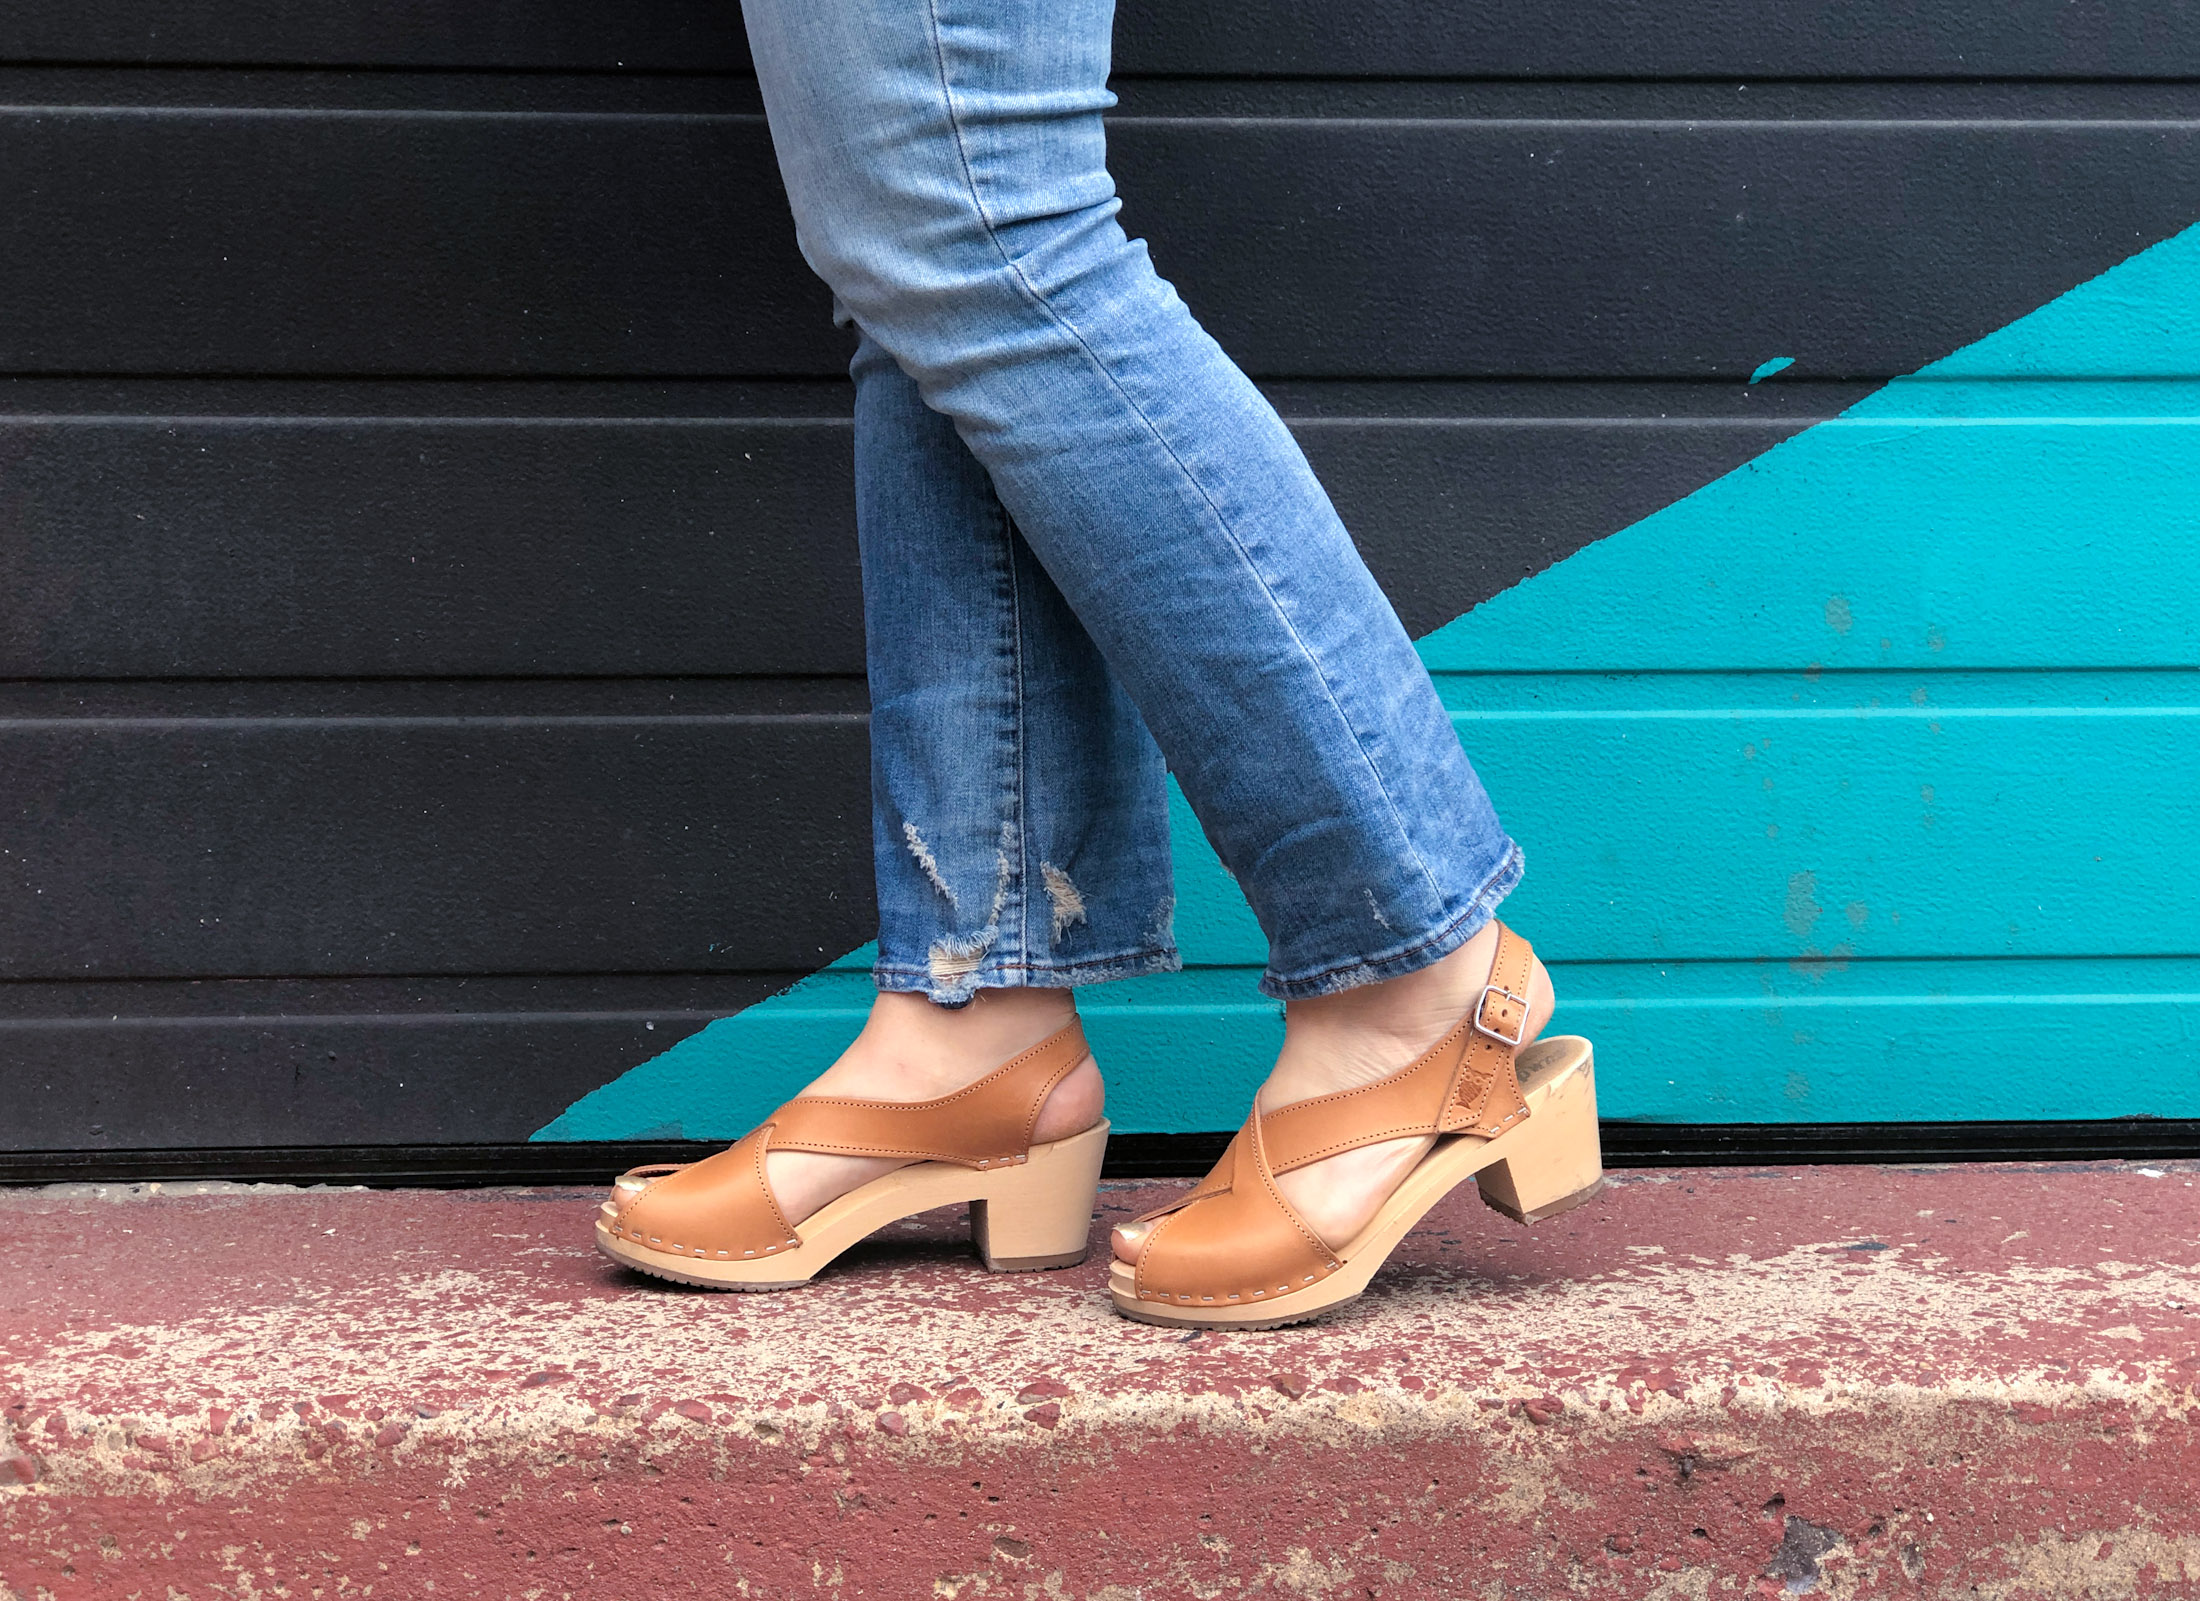 The Cutest Summer Clogs: A Mini-Review